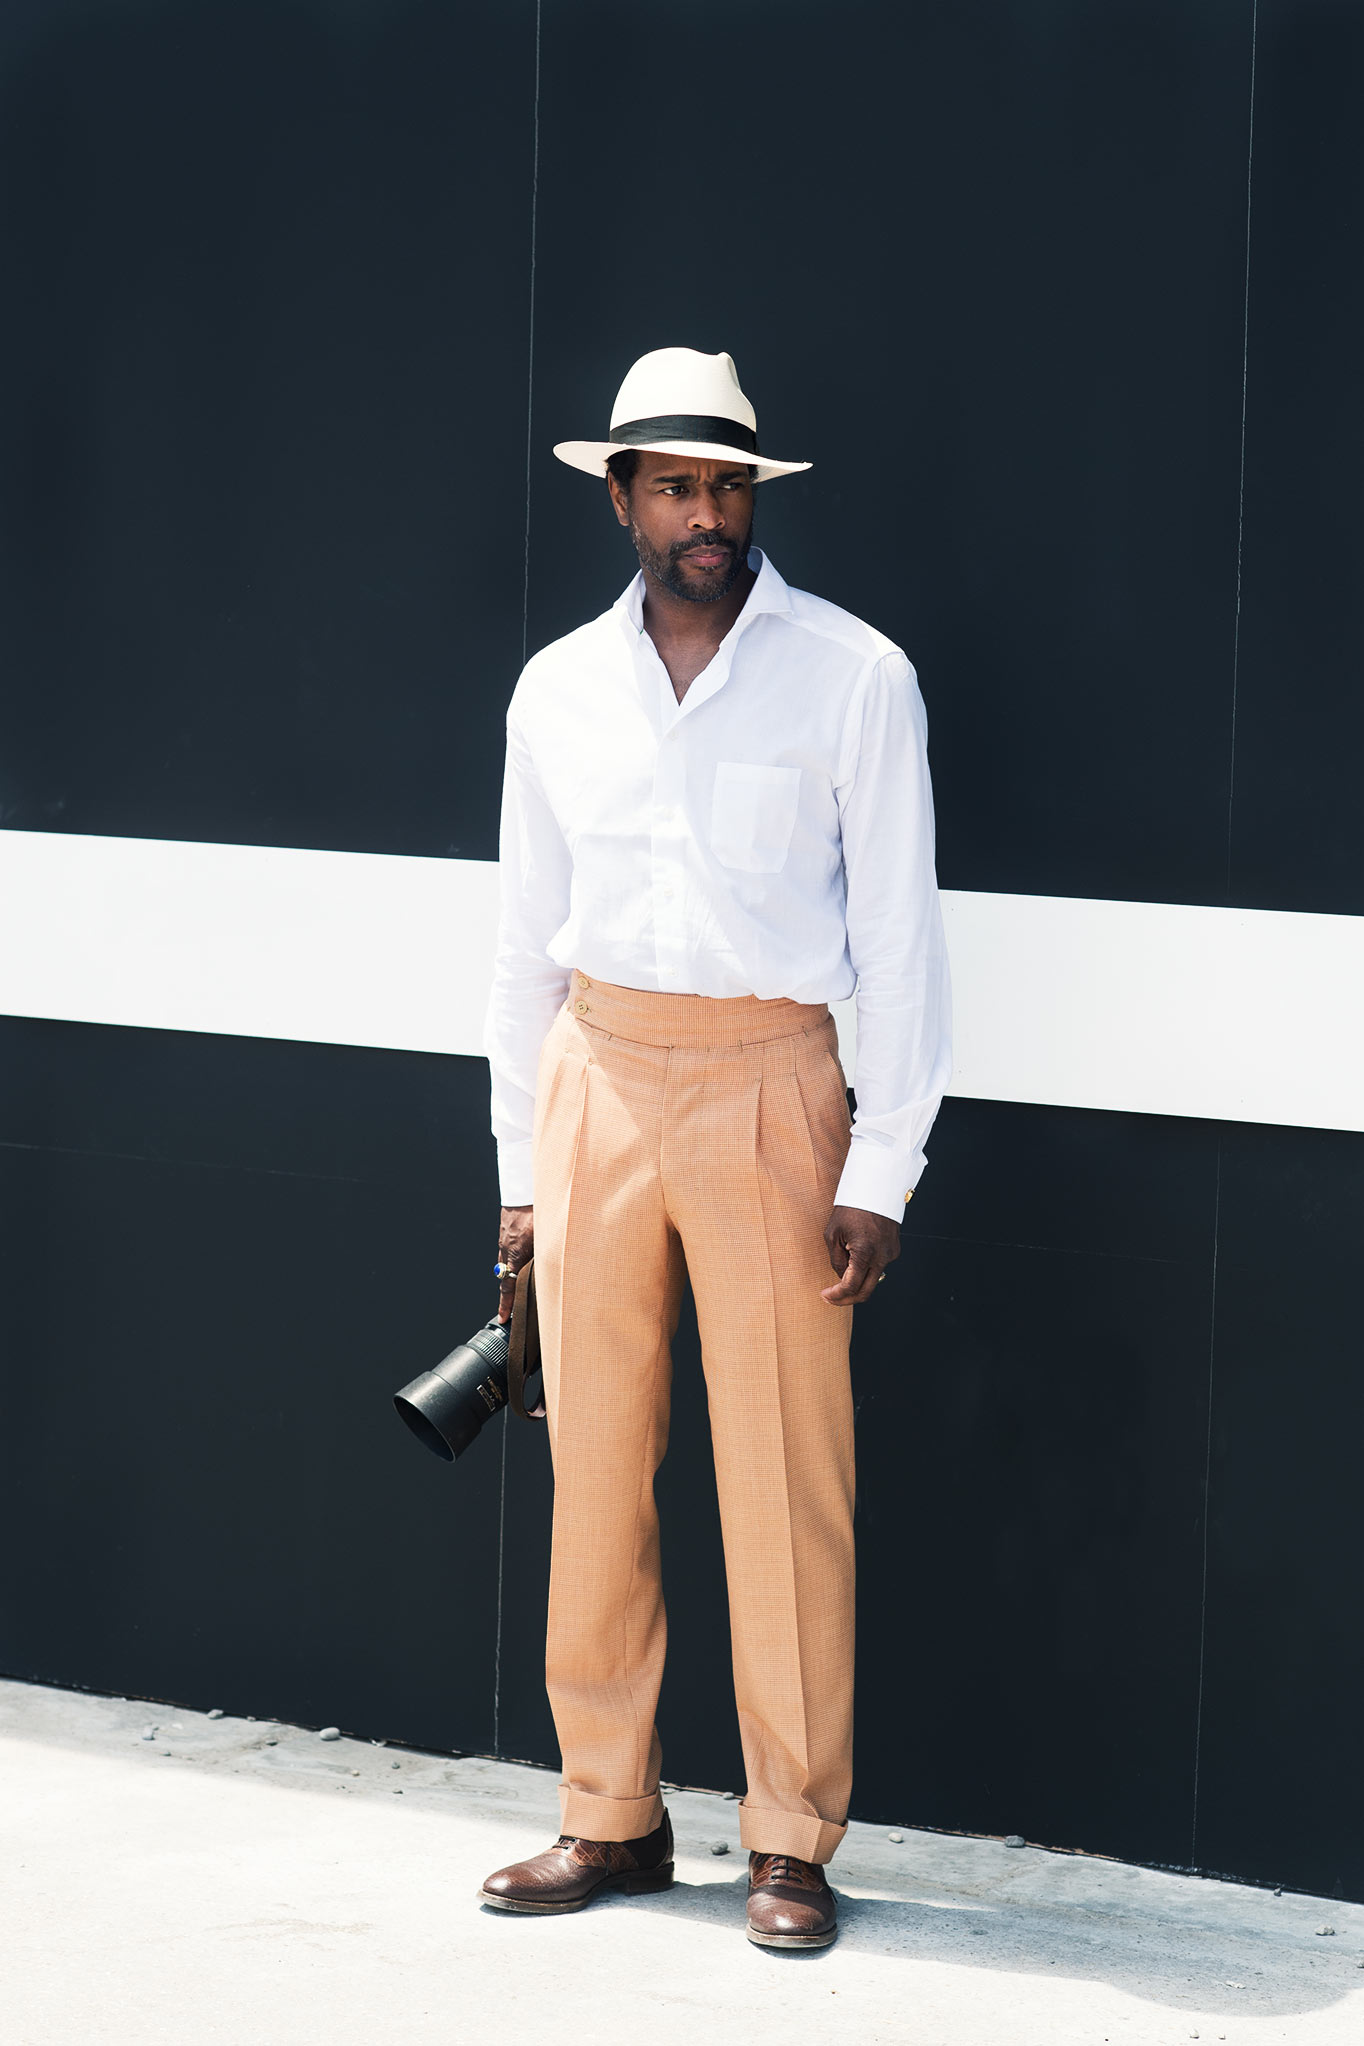 Karl-Edwin Guerre at Pitti Uomo 86